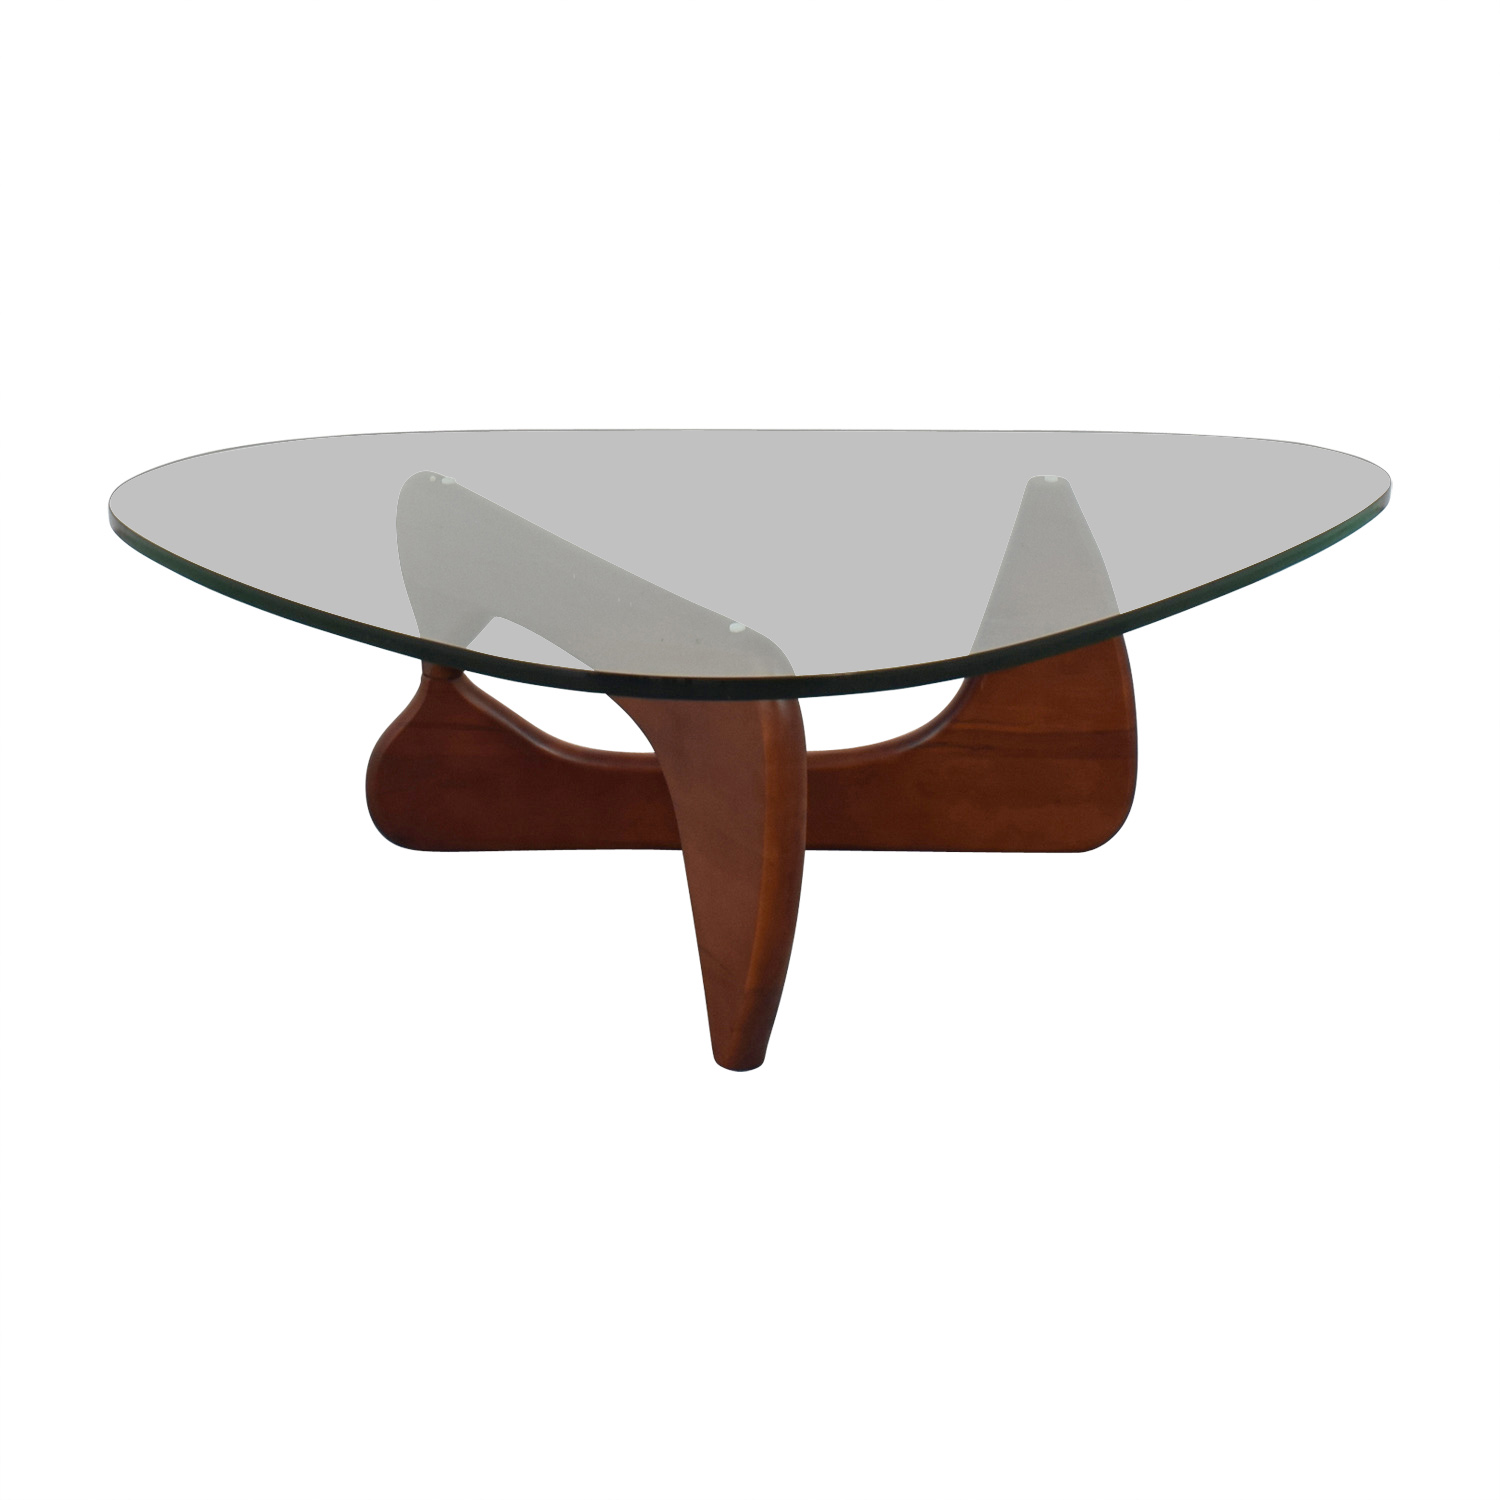 buy Modway Isamu Noguchi-inspired Triangle Glass Coffee Table with Cherry Wood Modway